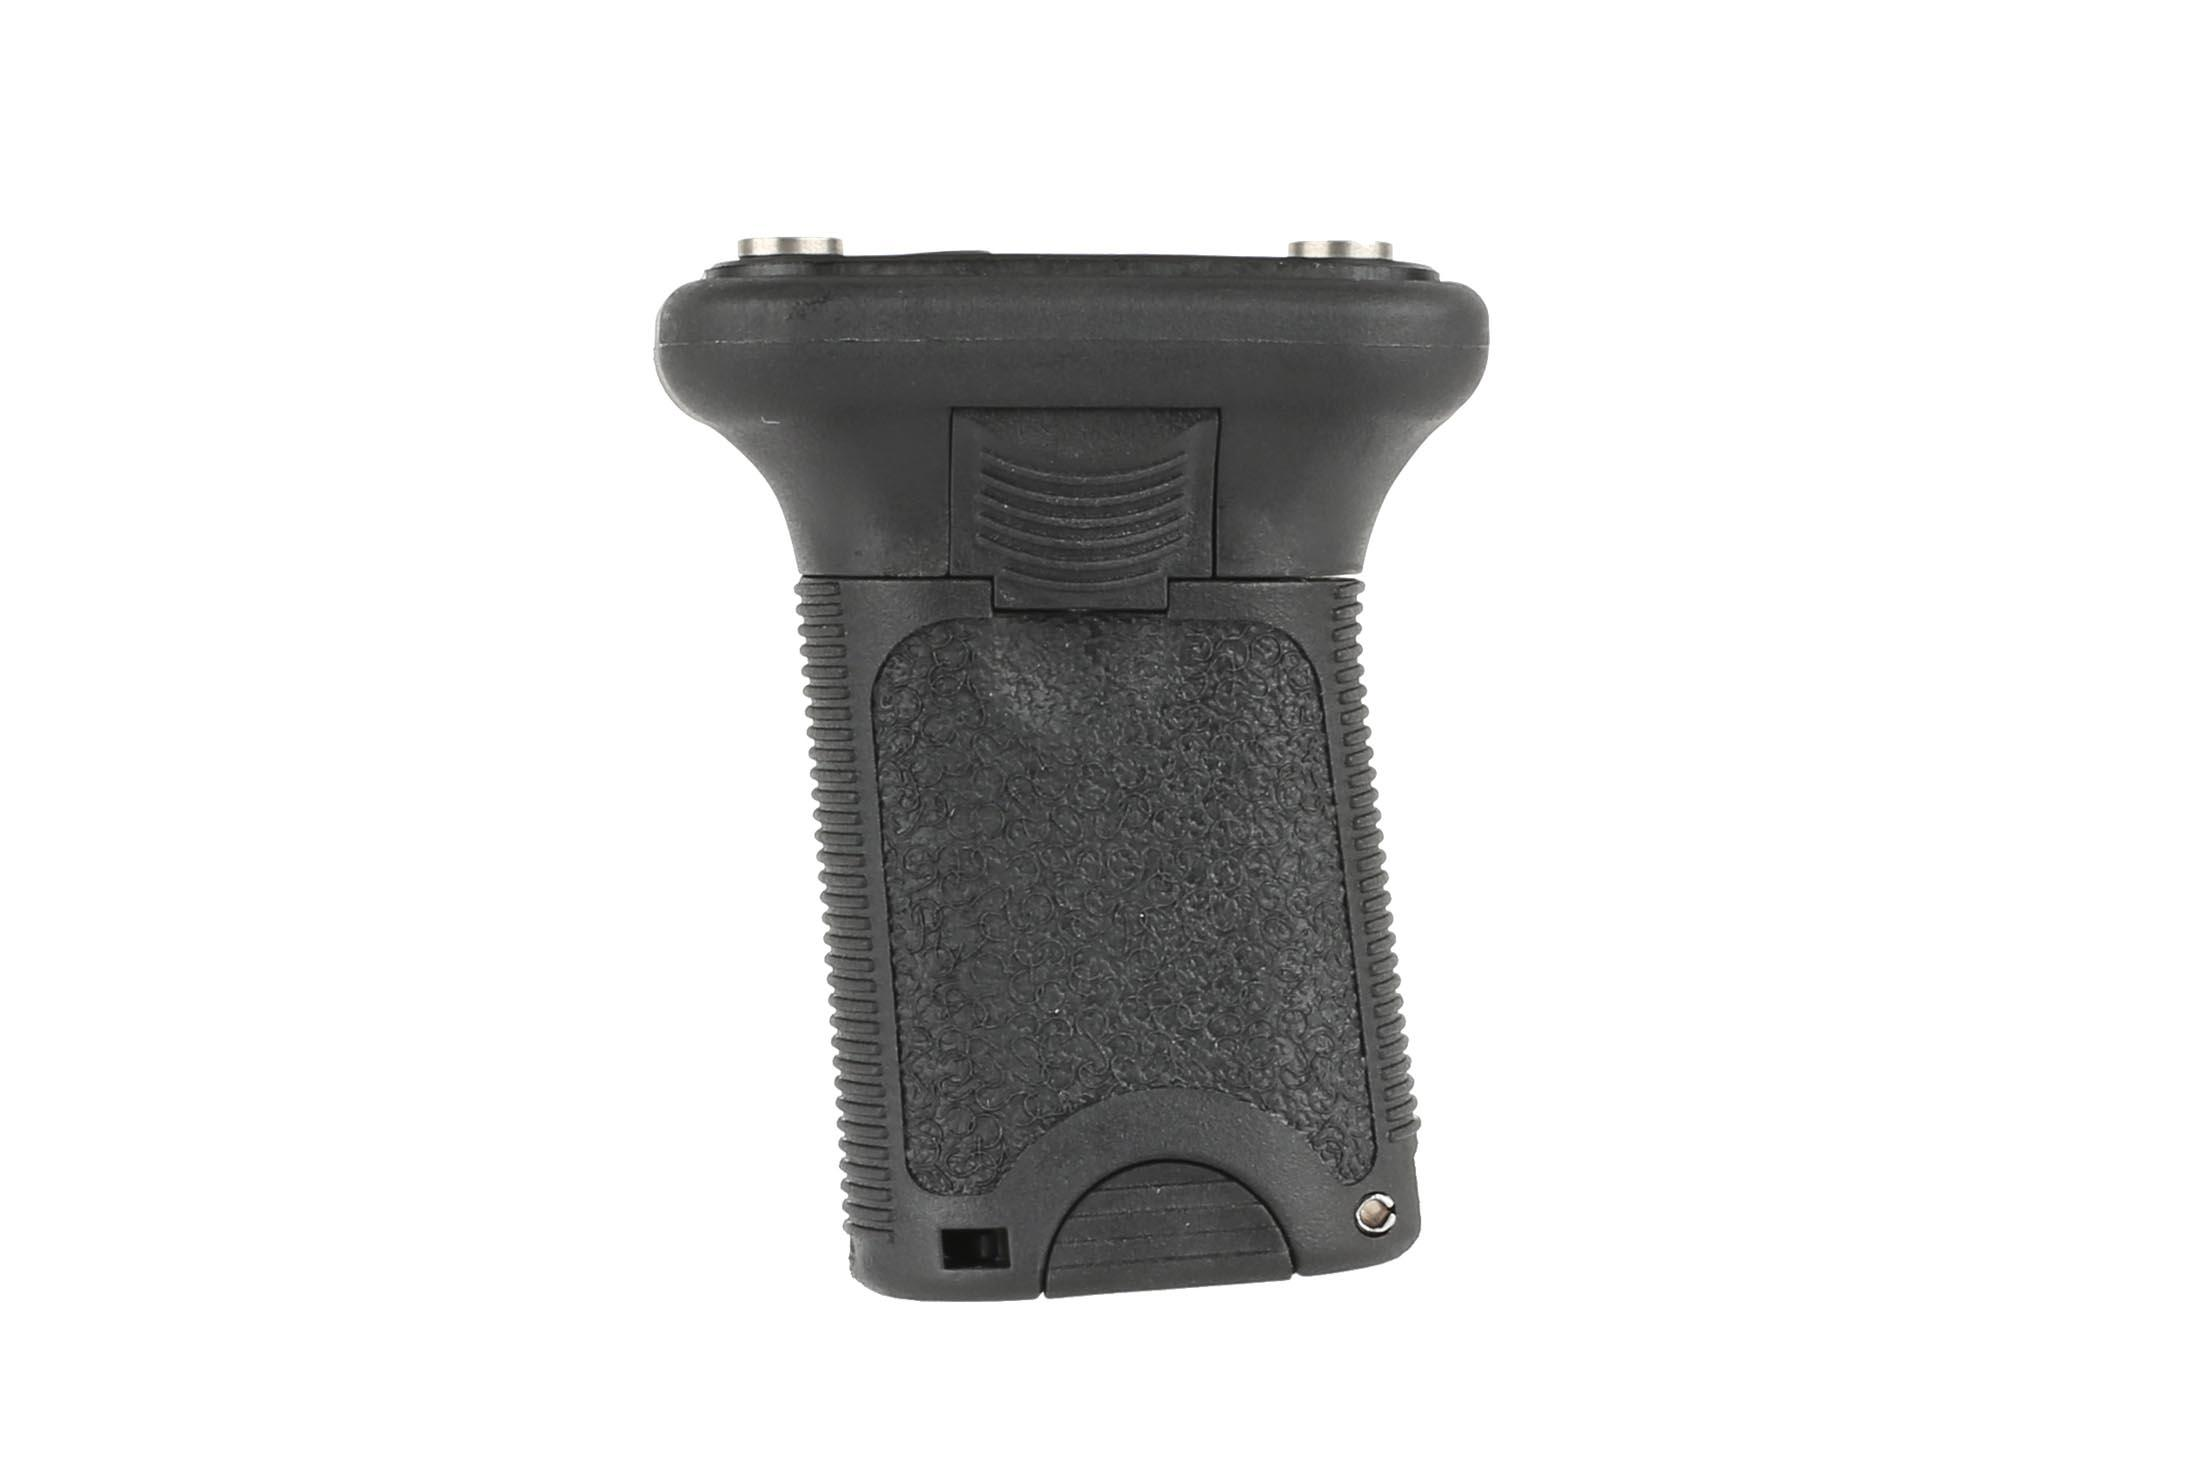 The BCM Gunfighter vertical grip short is compatible with KeyMod handguards